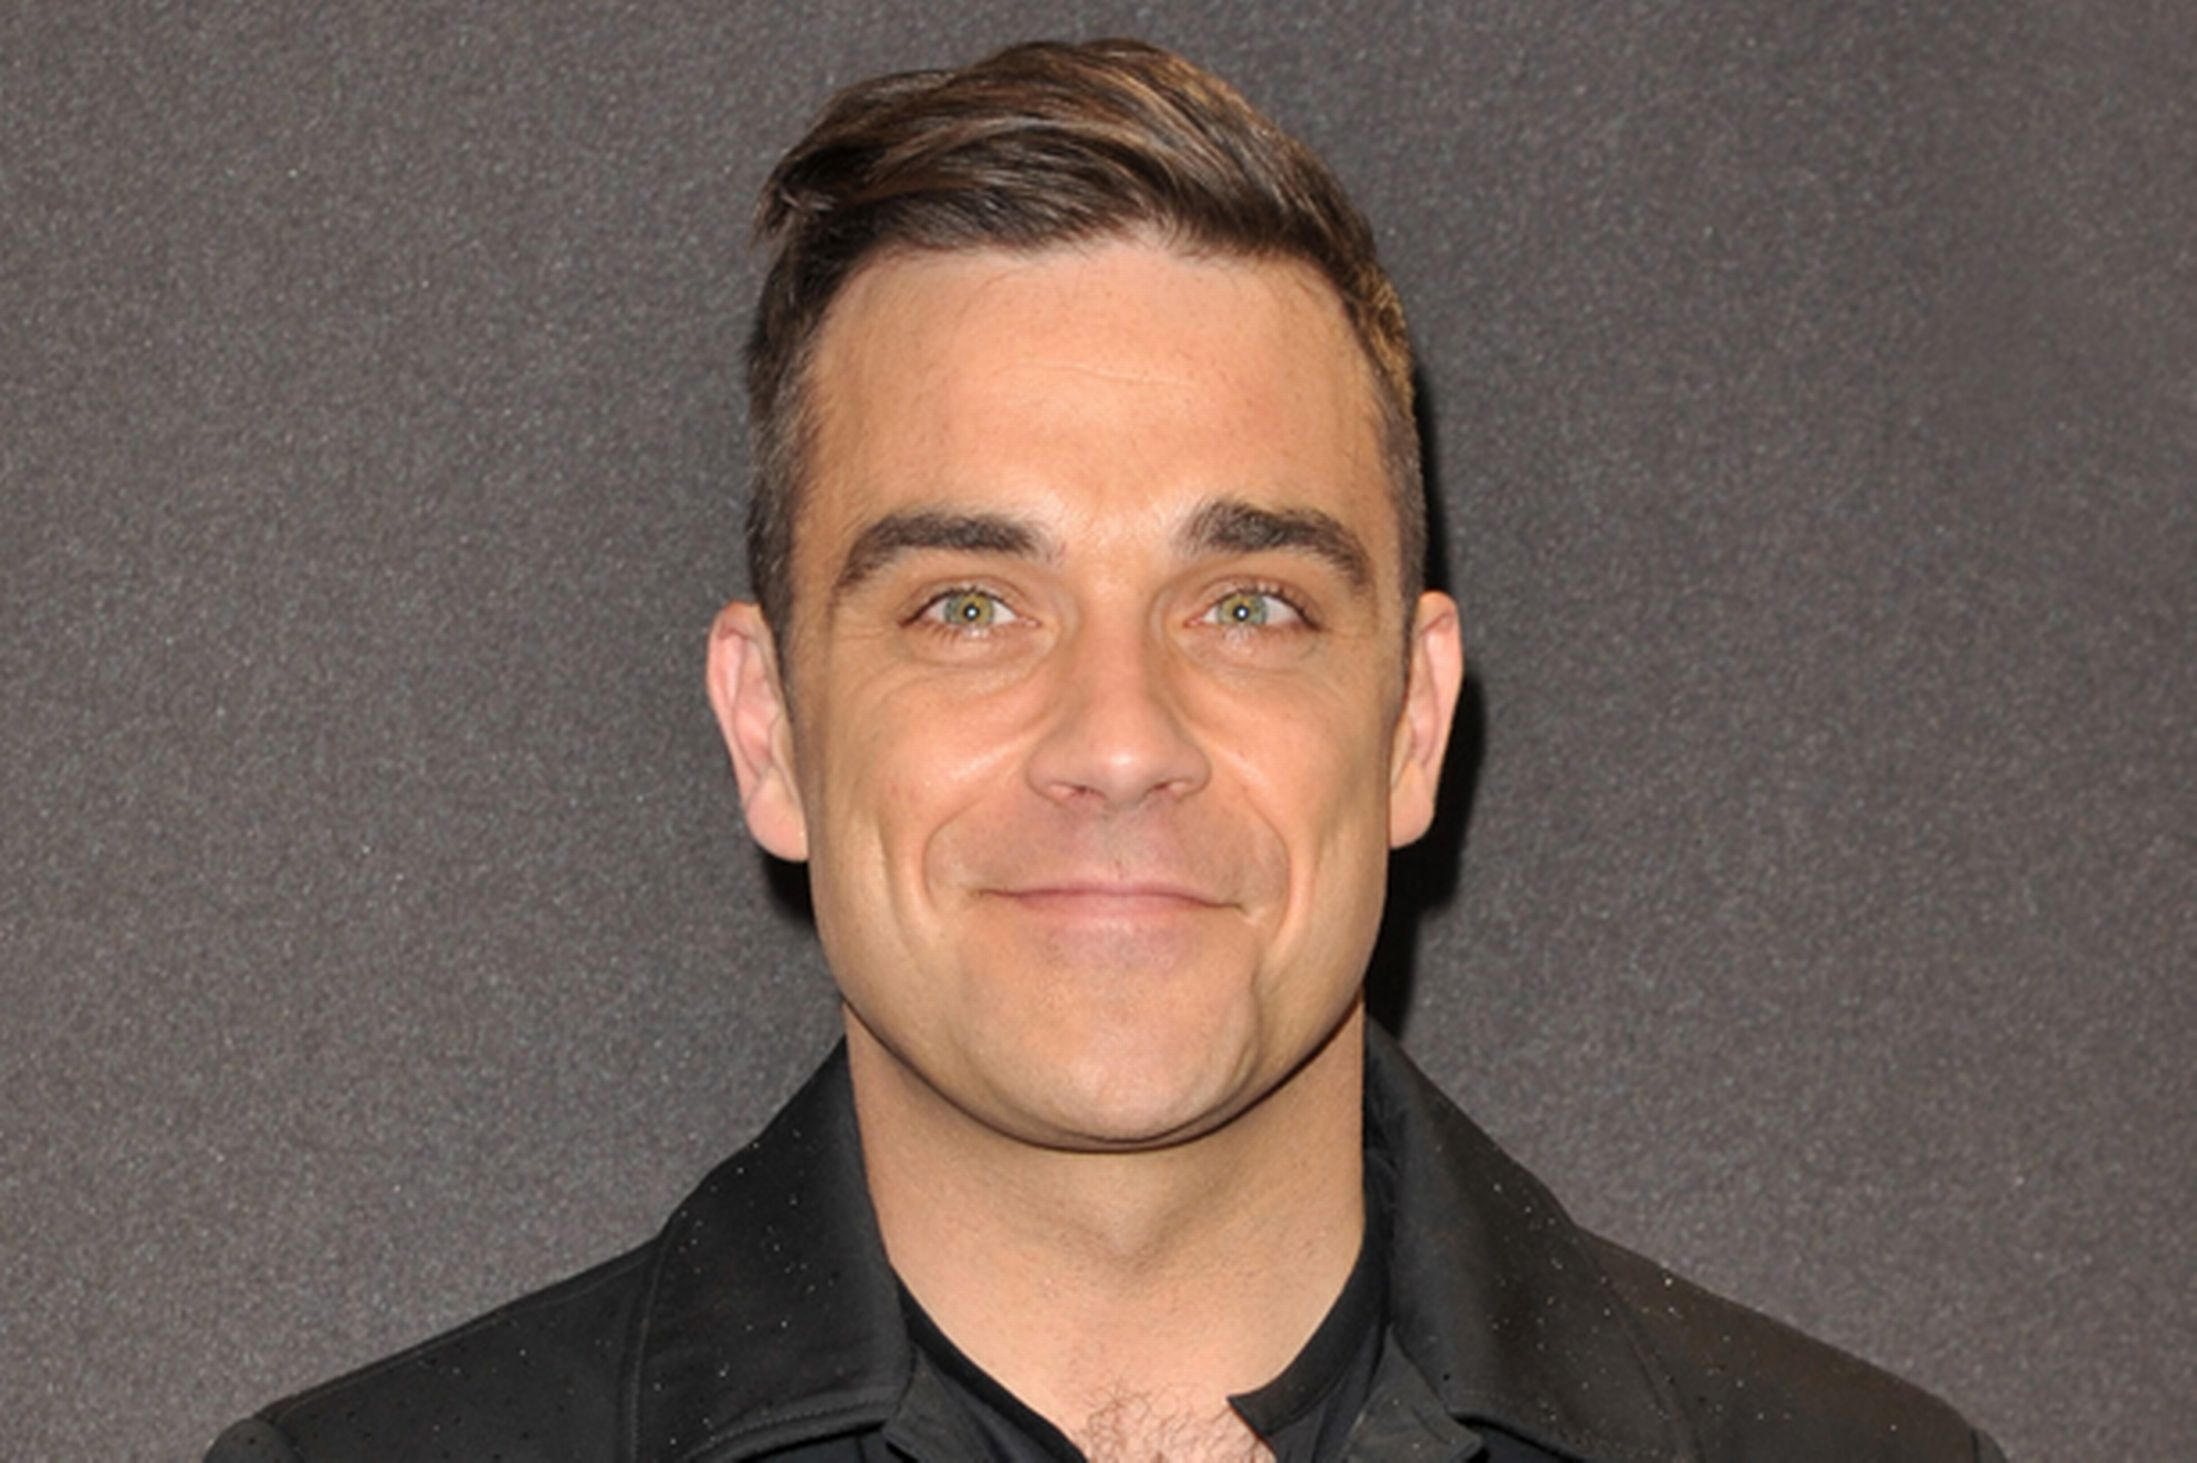 robbie williams - photo #24